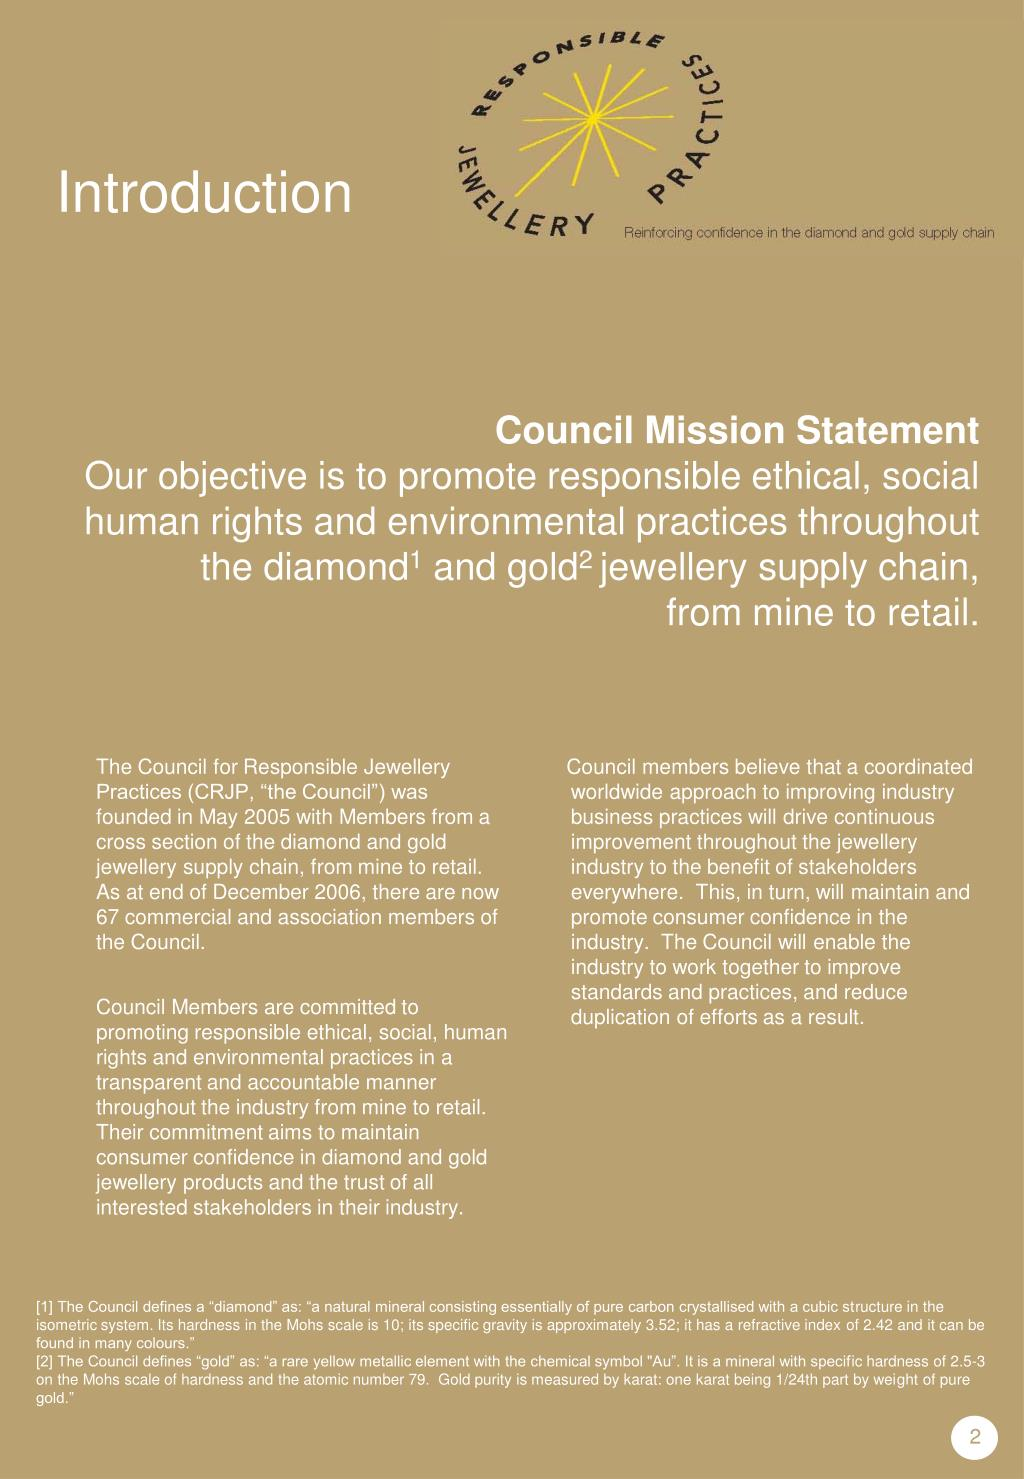 "The Council for Responsible Jewellery Practices (CRJP, ""the Council"") was founded in May 2005 with Members from a cross section of the diamond and gold jewellery supply chain, from mine to retail. As at end of December 2006, there are now  67 commercial and association members of the Council."